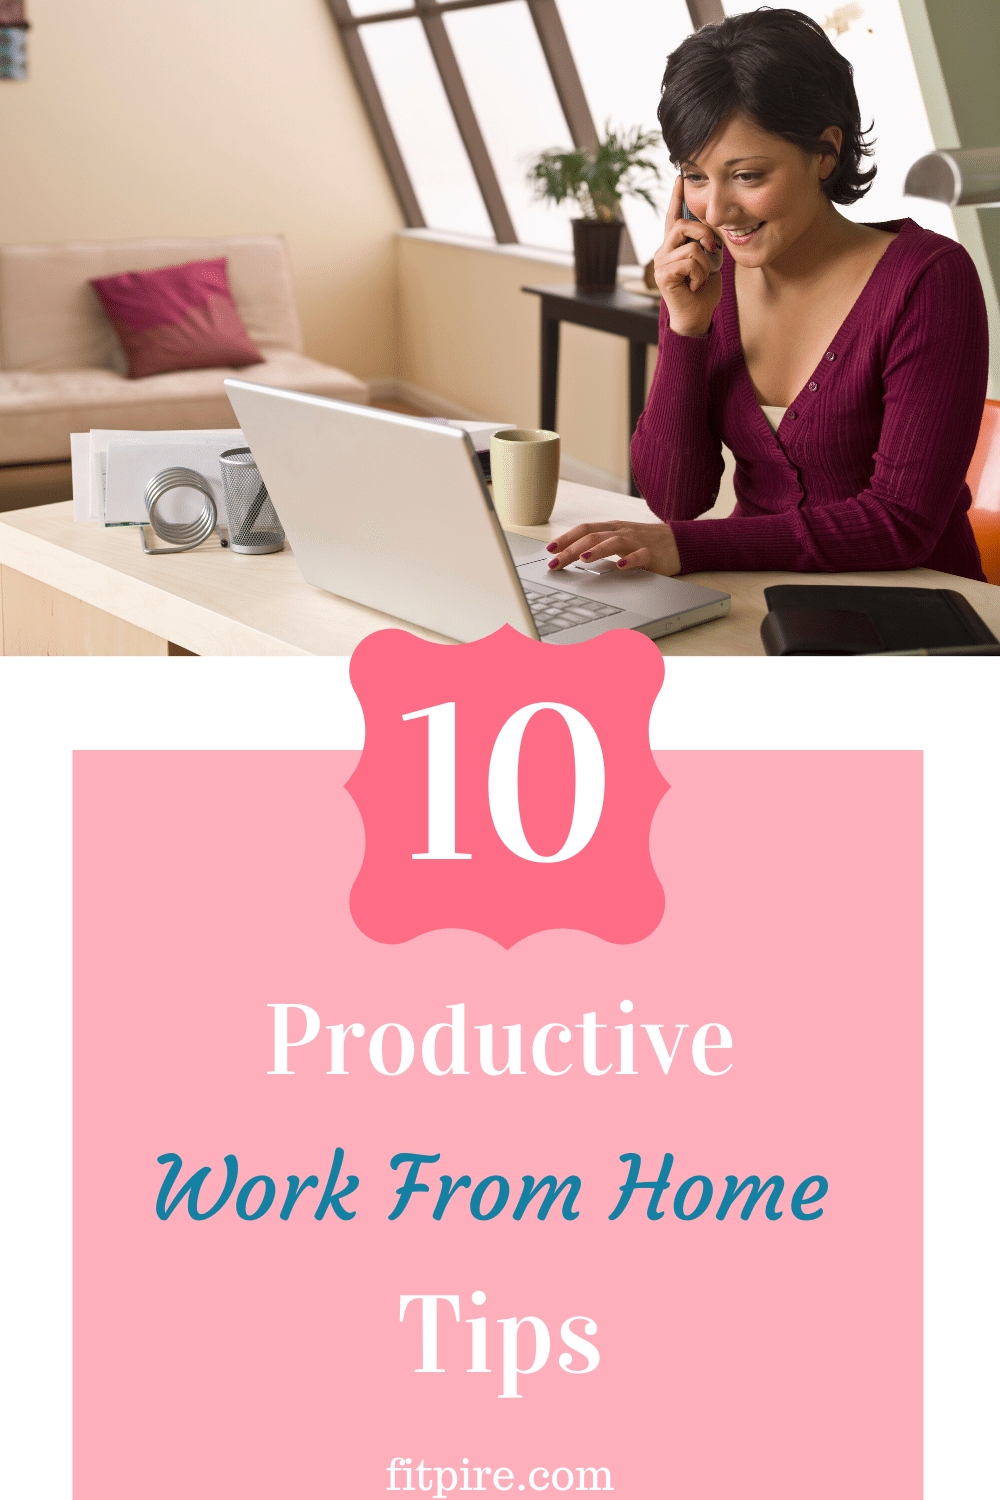 10 Productive Work From Home Tips